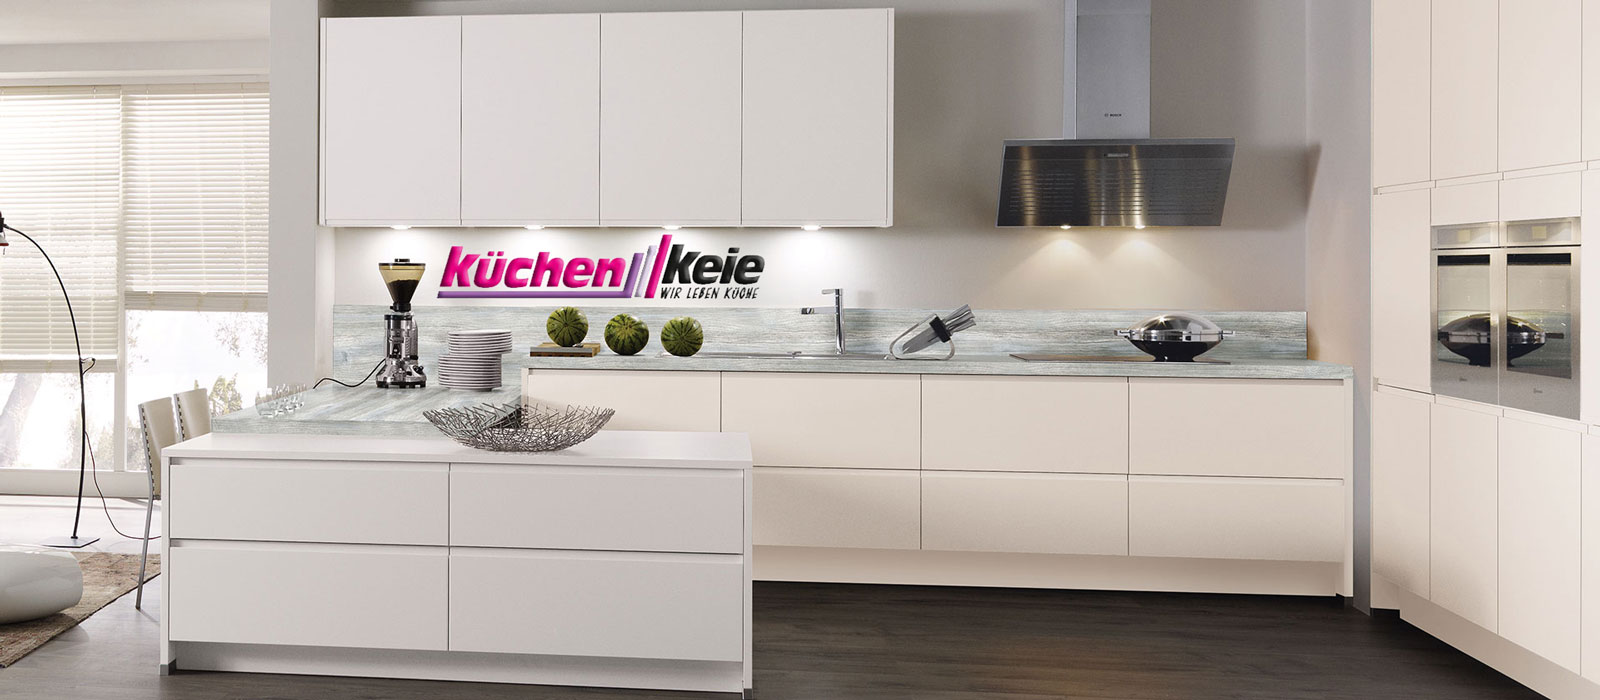 kchen offenbach great inspiration safak kche offenbach und schne kchen kln kuchen kueche. Black Bedroom Furniture Sets. Home Design Ideas